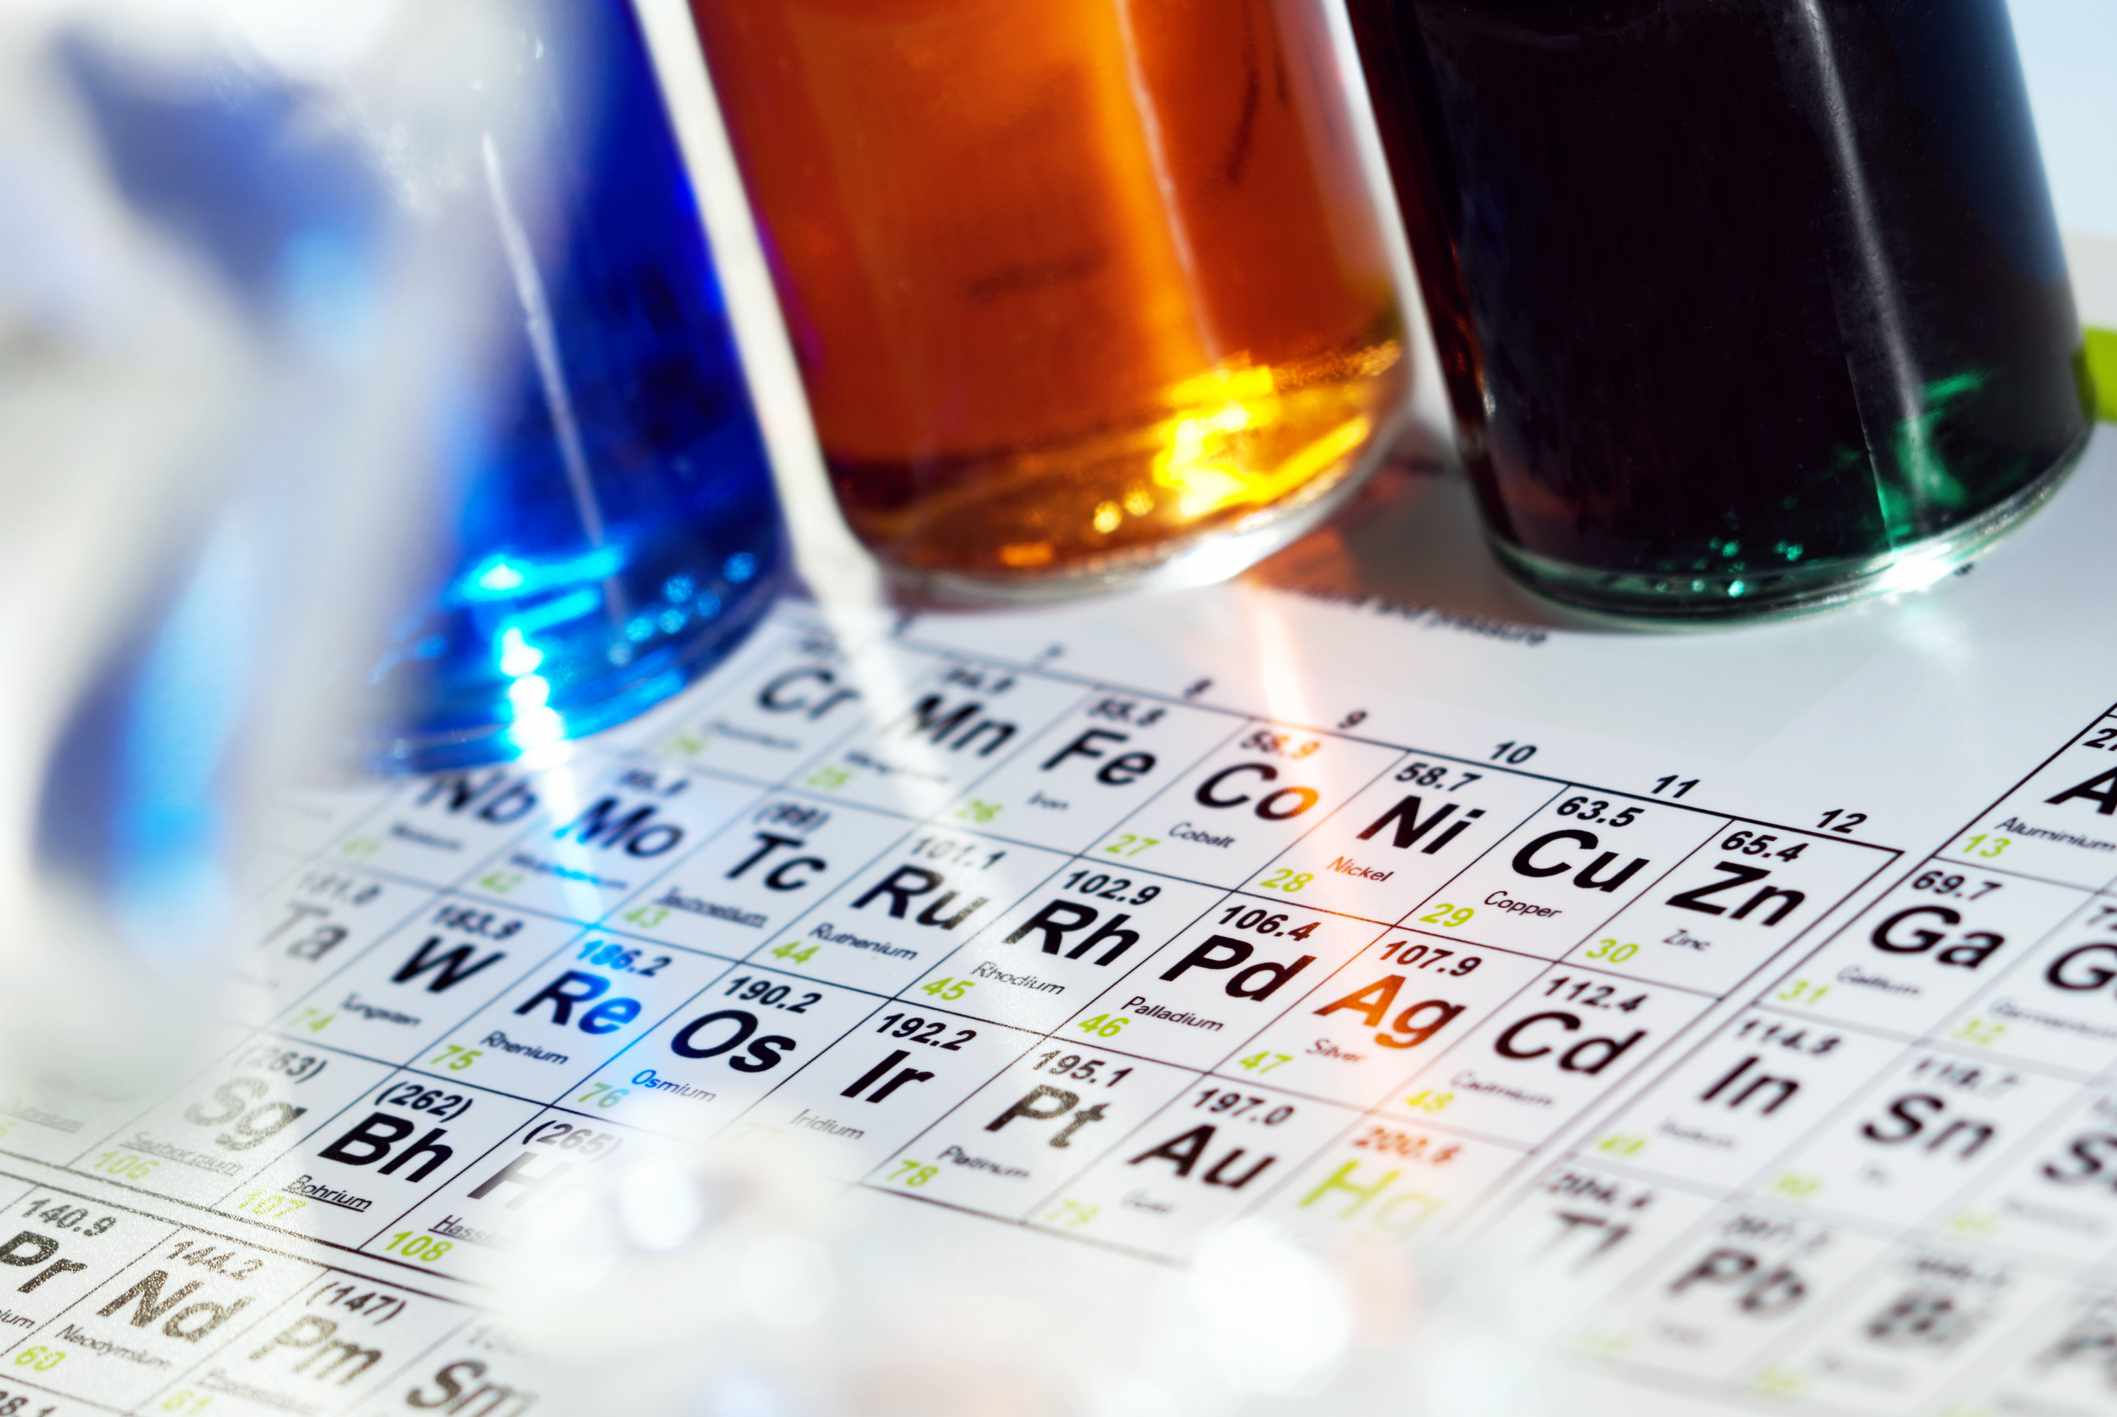 Periodic table and bottles of colored liquids